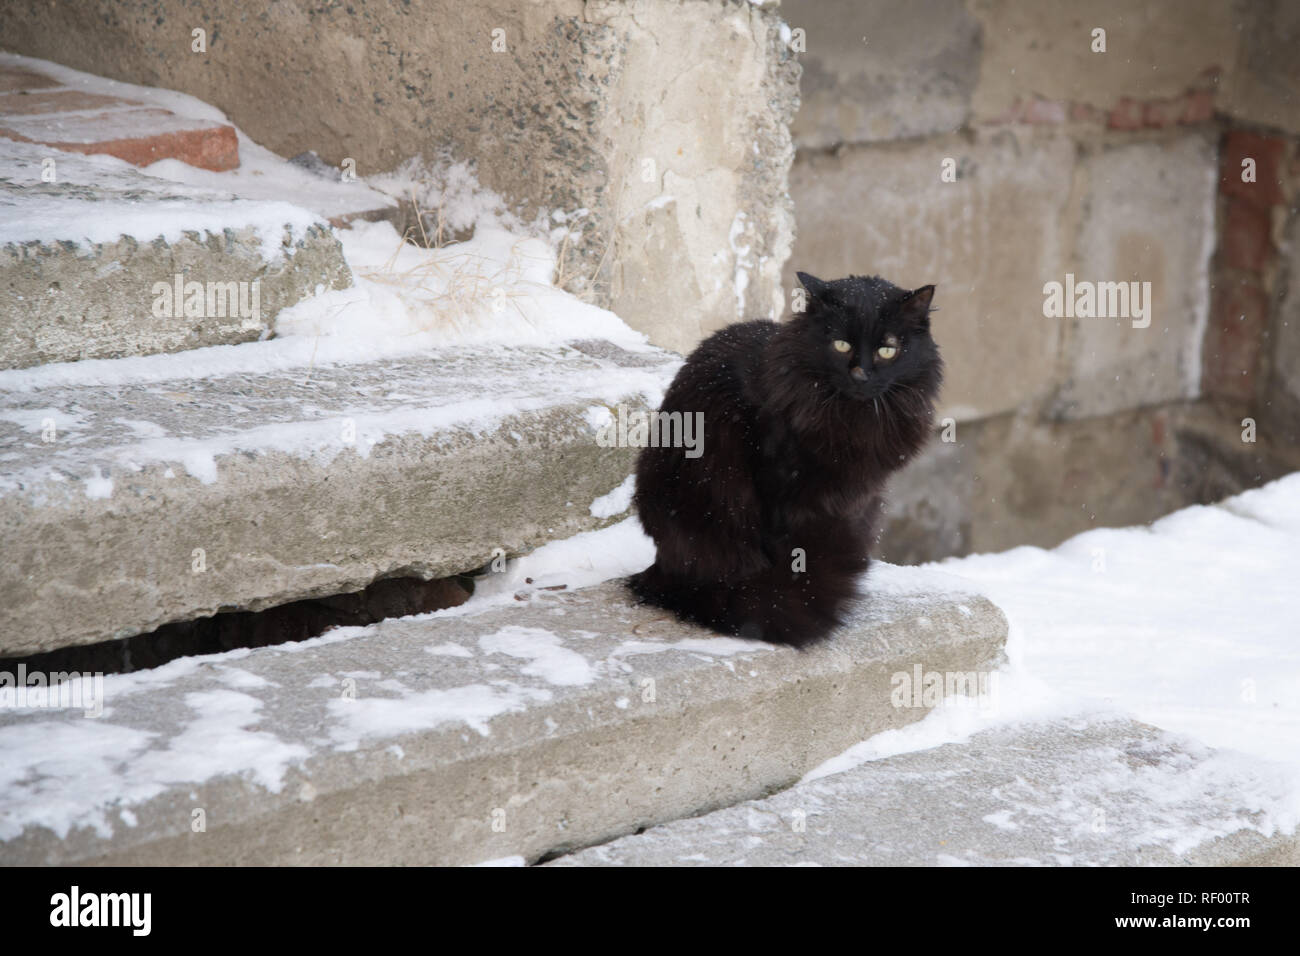 Abandoned street cats, animal abuse, sadness  Black fluffy cat on a